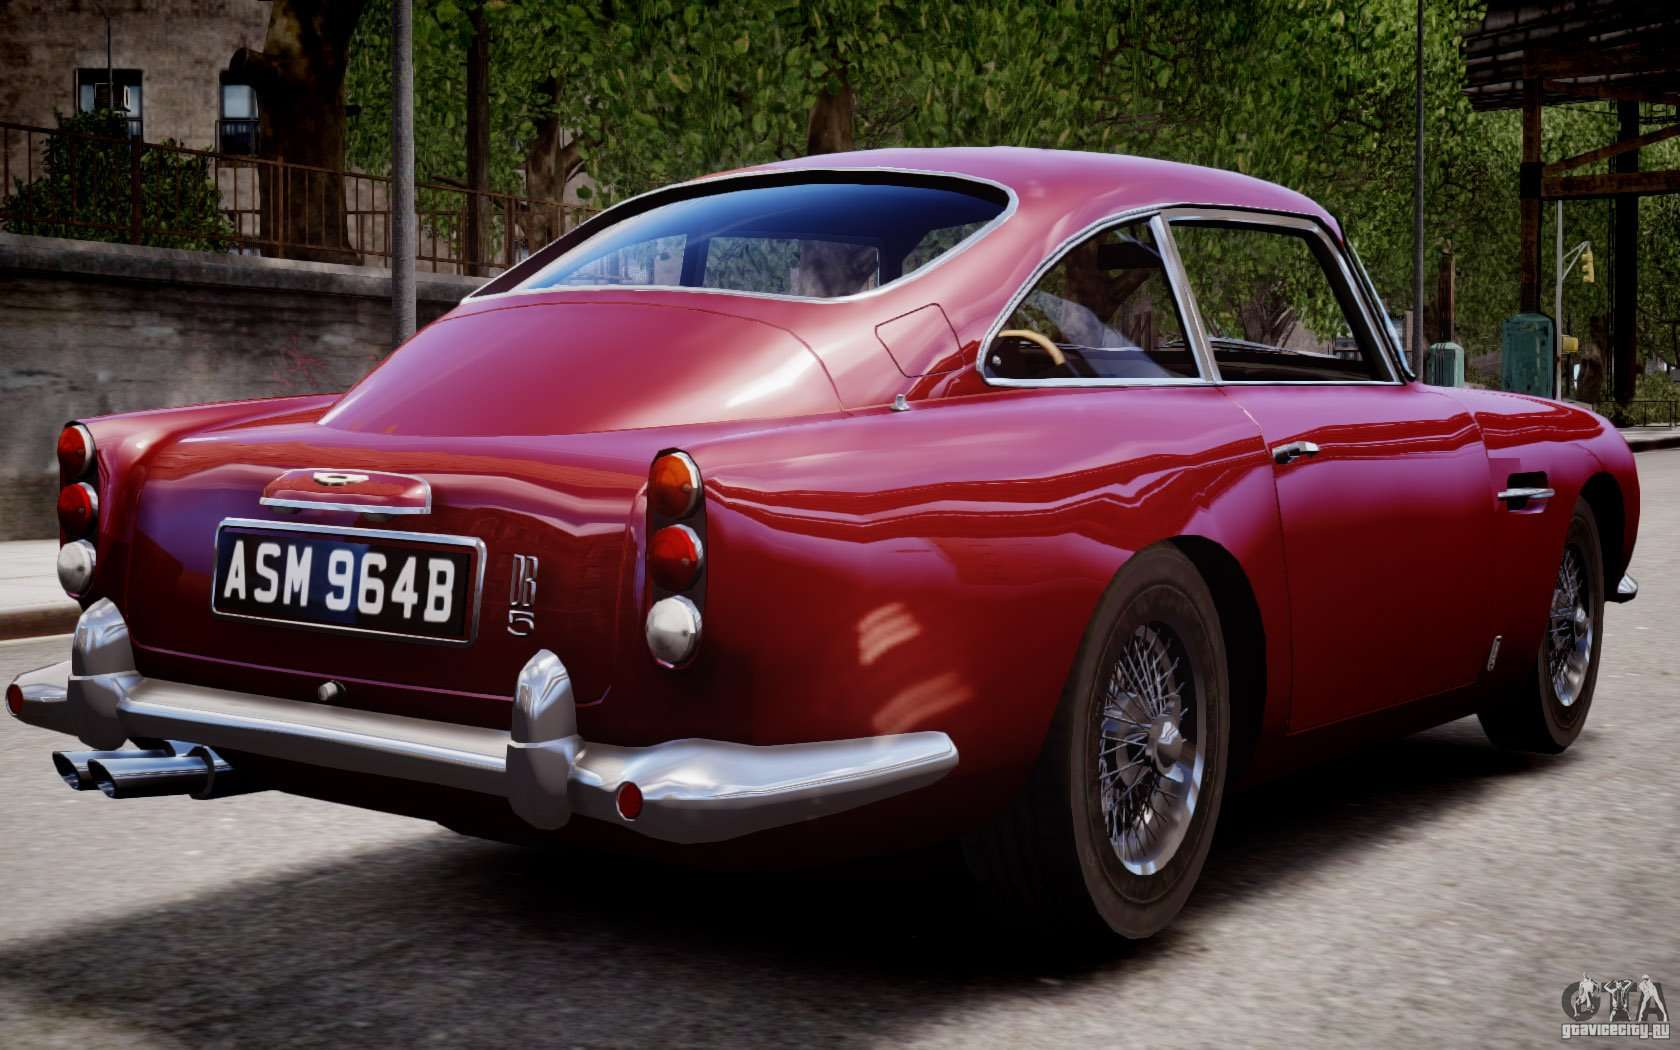 aston martin db5 in gta 5 with 26502 Aston Martin Db5 1964 on Diarama further Watch together with Watch likewise Game moreover The Real Life Cars In The Grand Theft Auto 5 2nd Trailer.